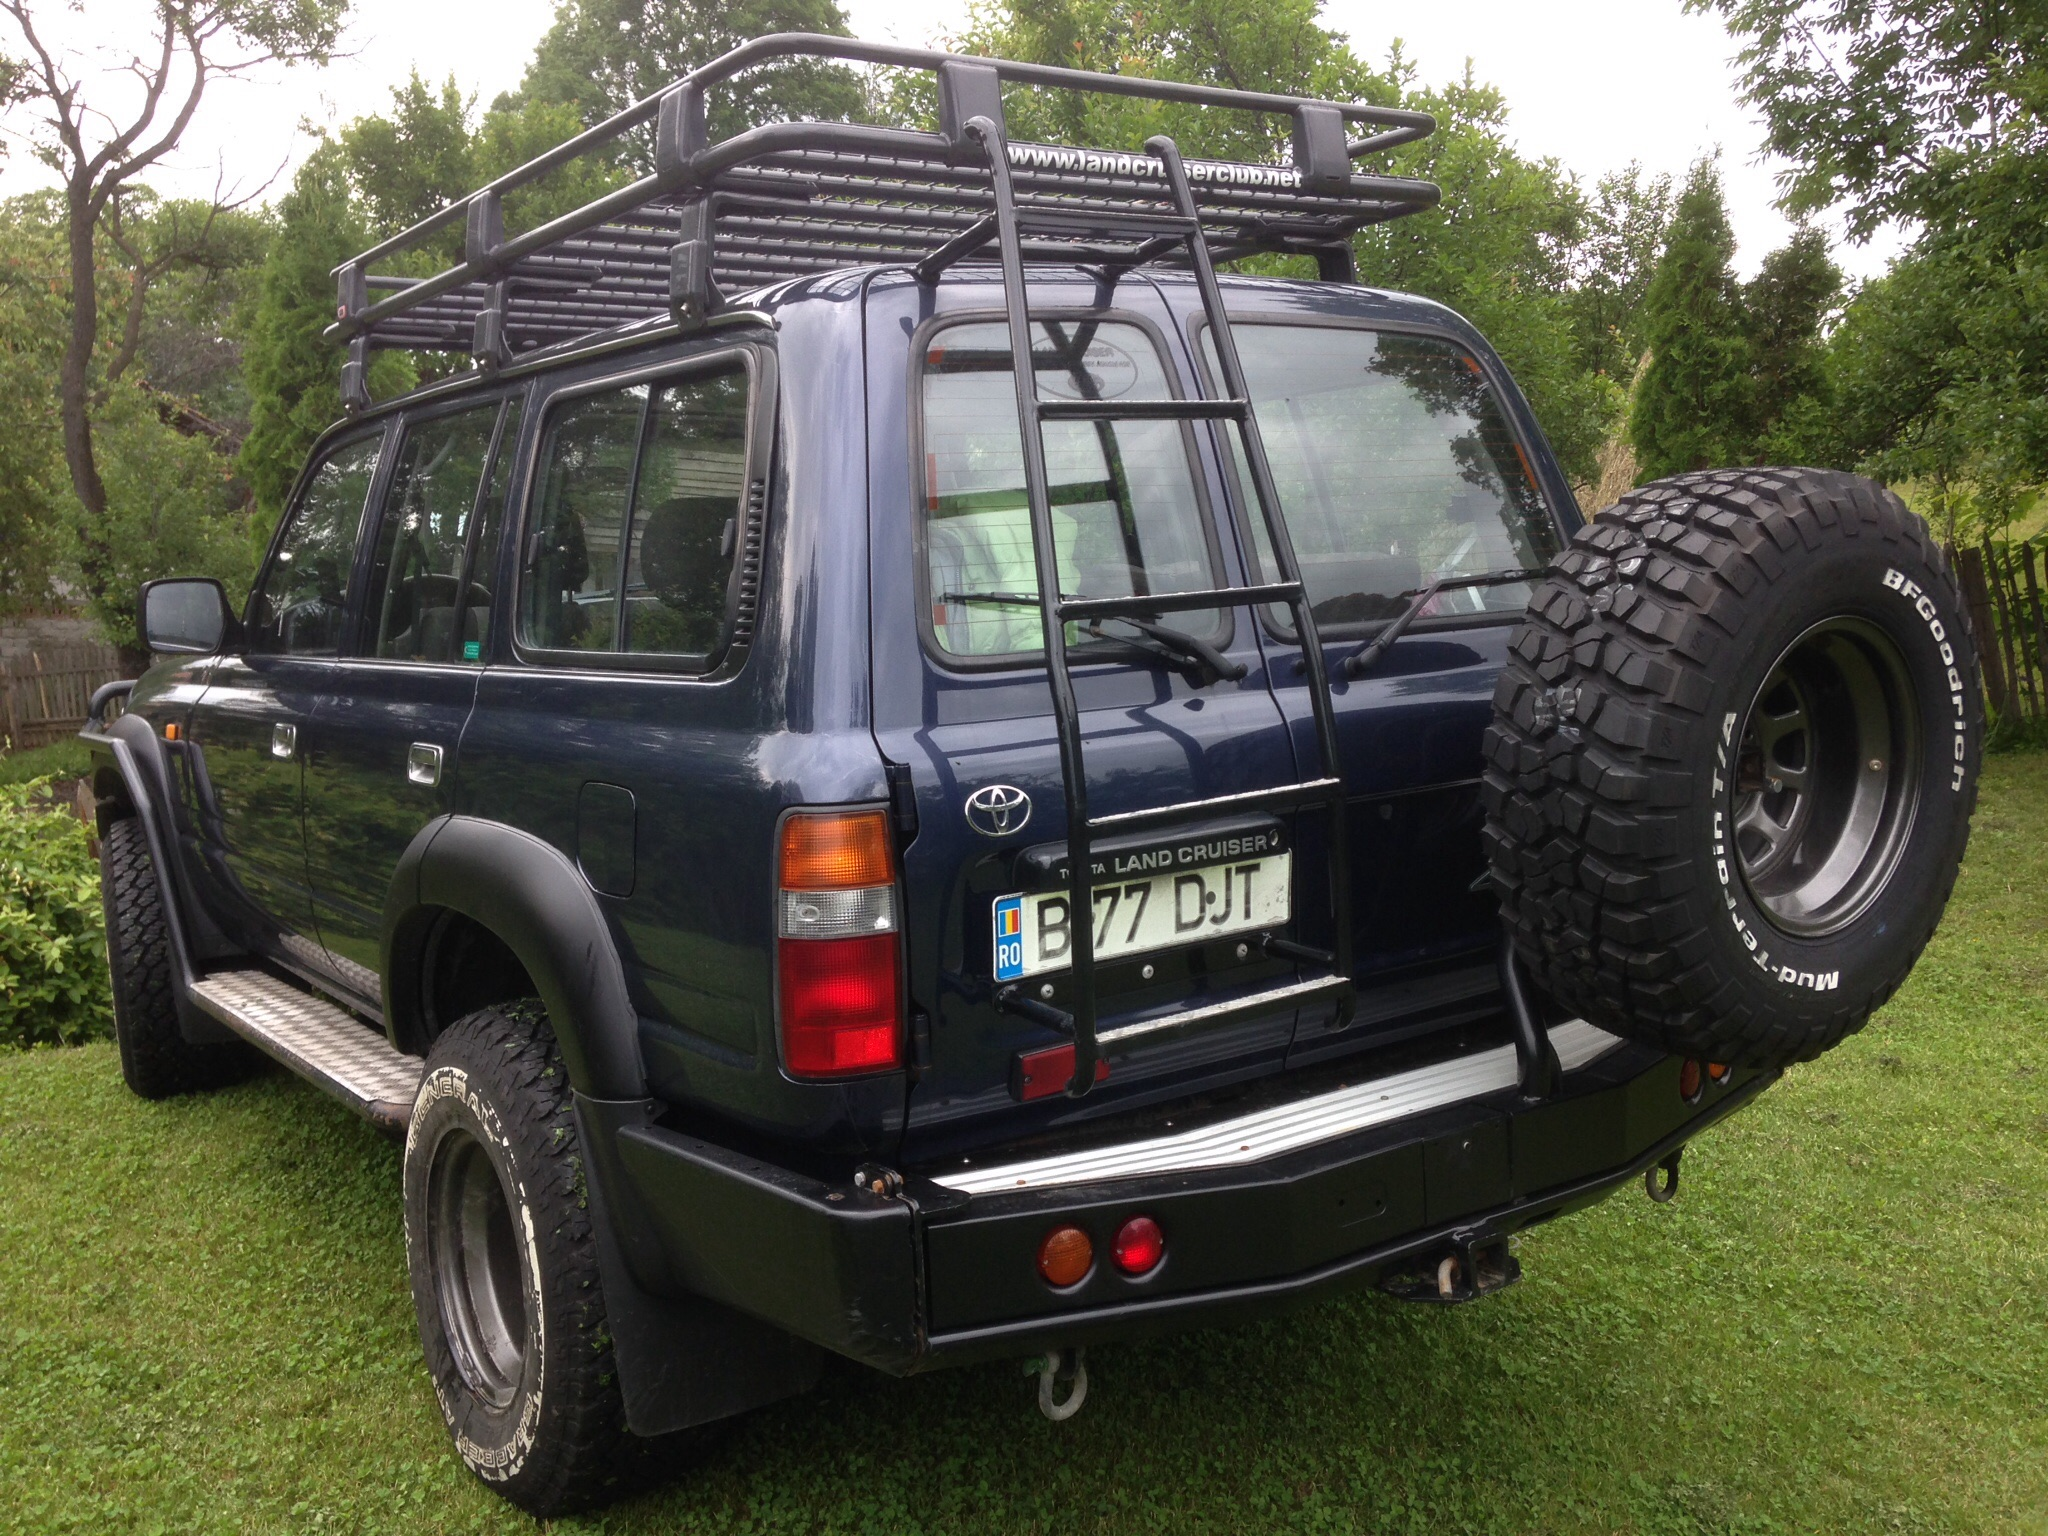 ... Could Have Been Made To Sling Or Hook Off The Rack Quite Easily, With A  Couple Of Safety Latches To Stop It Slipping Off. It Might Give You Some  Ideas.